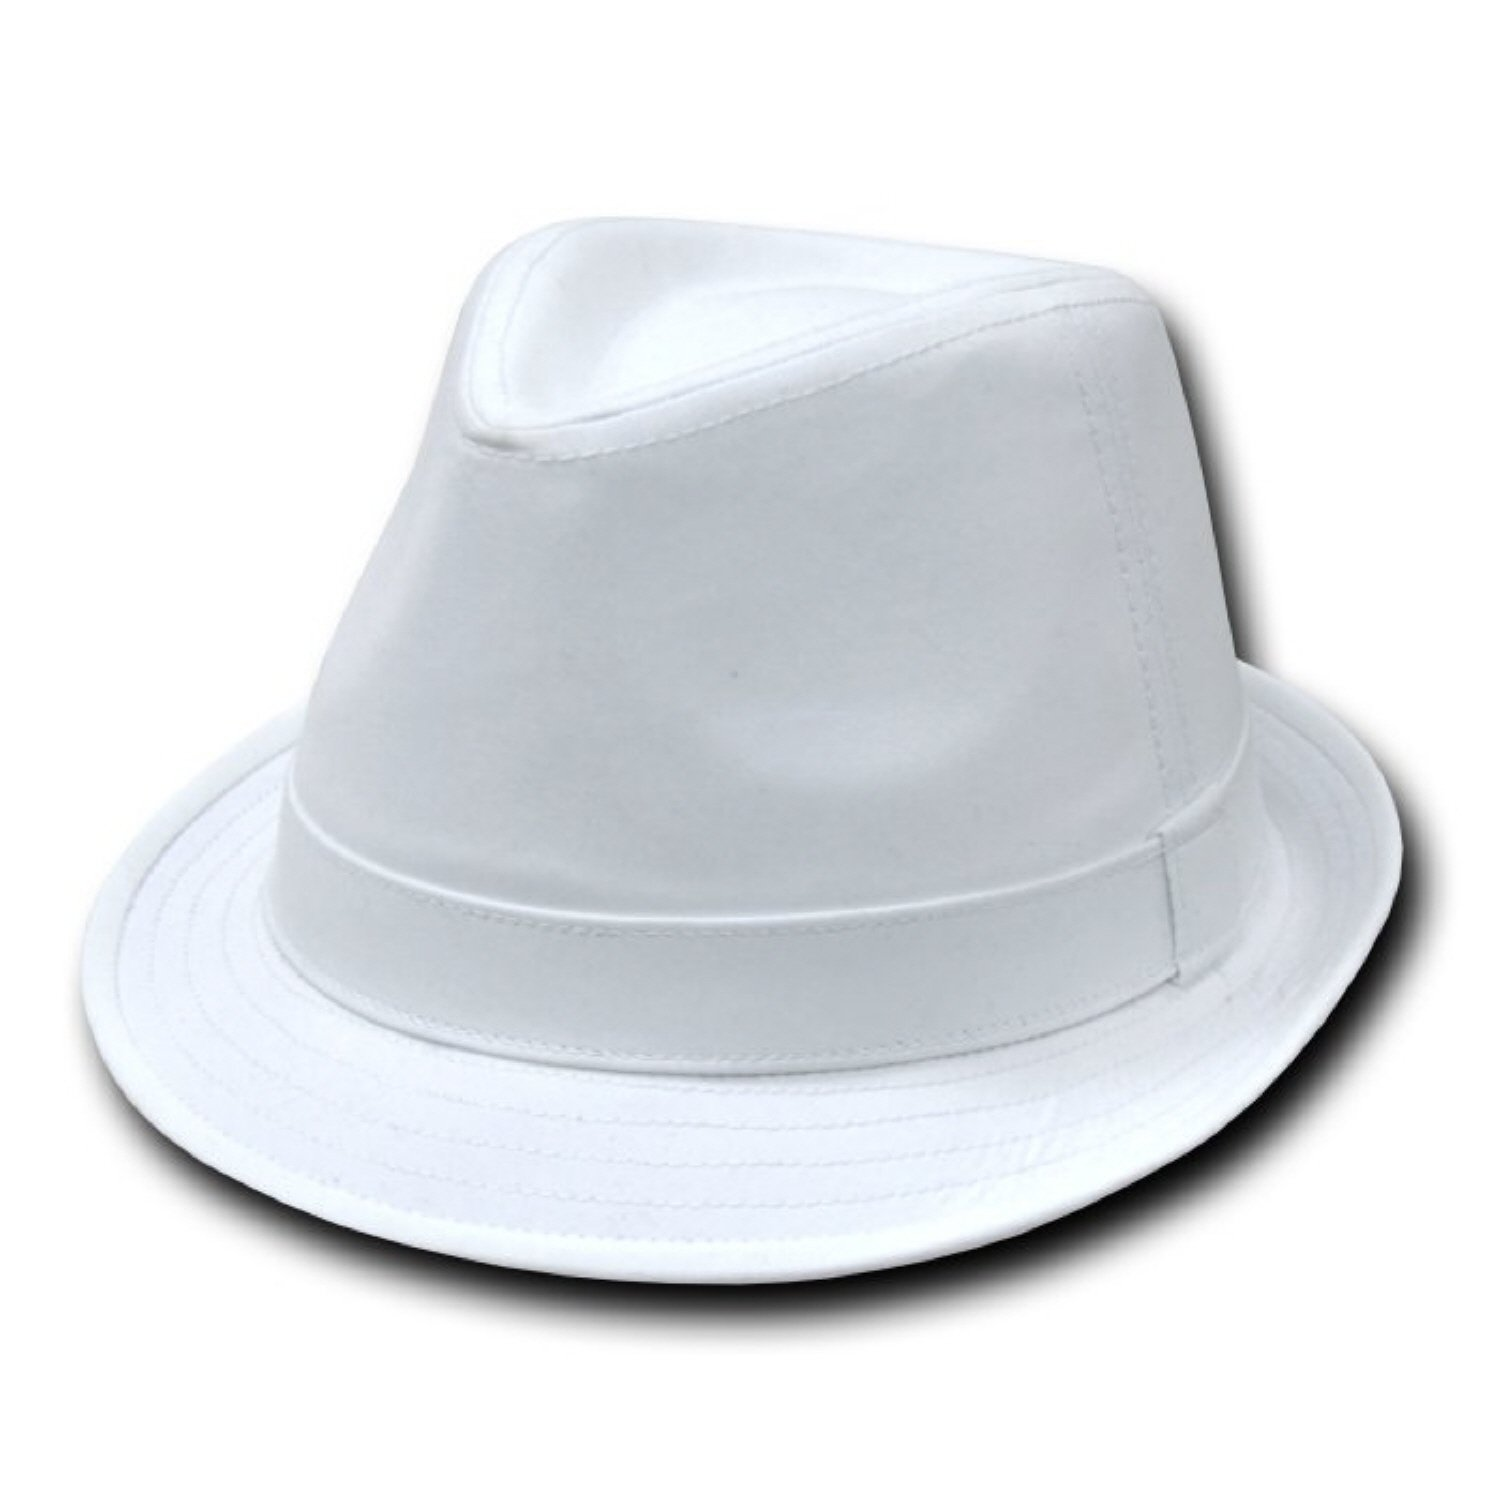 Find great deals on eBay for womens white hat. Shop with confidence.